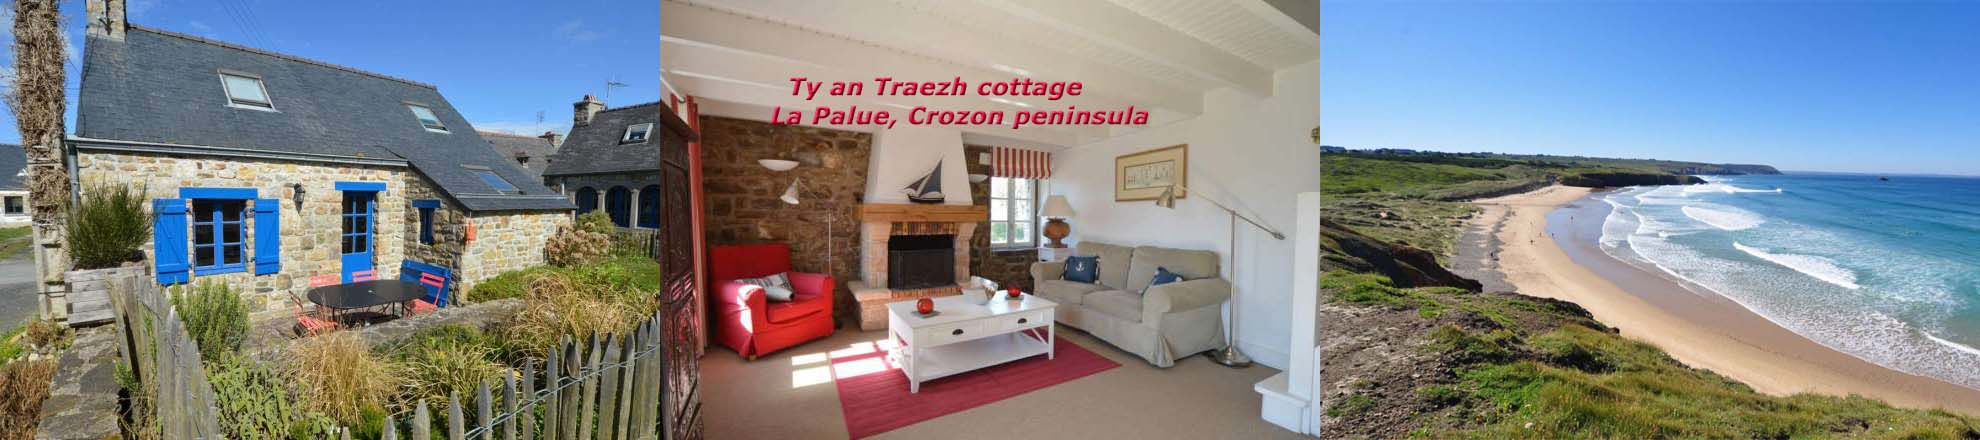 Brittany holiday home: Ty an Traezh cottage, near the la Palue beach